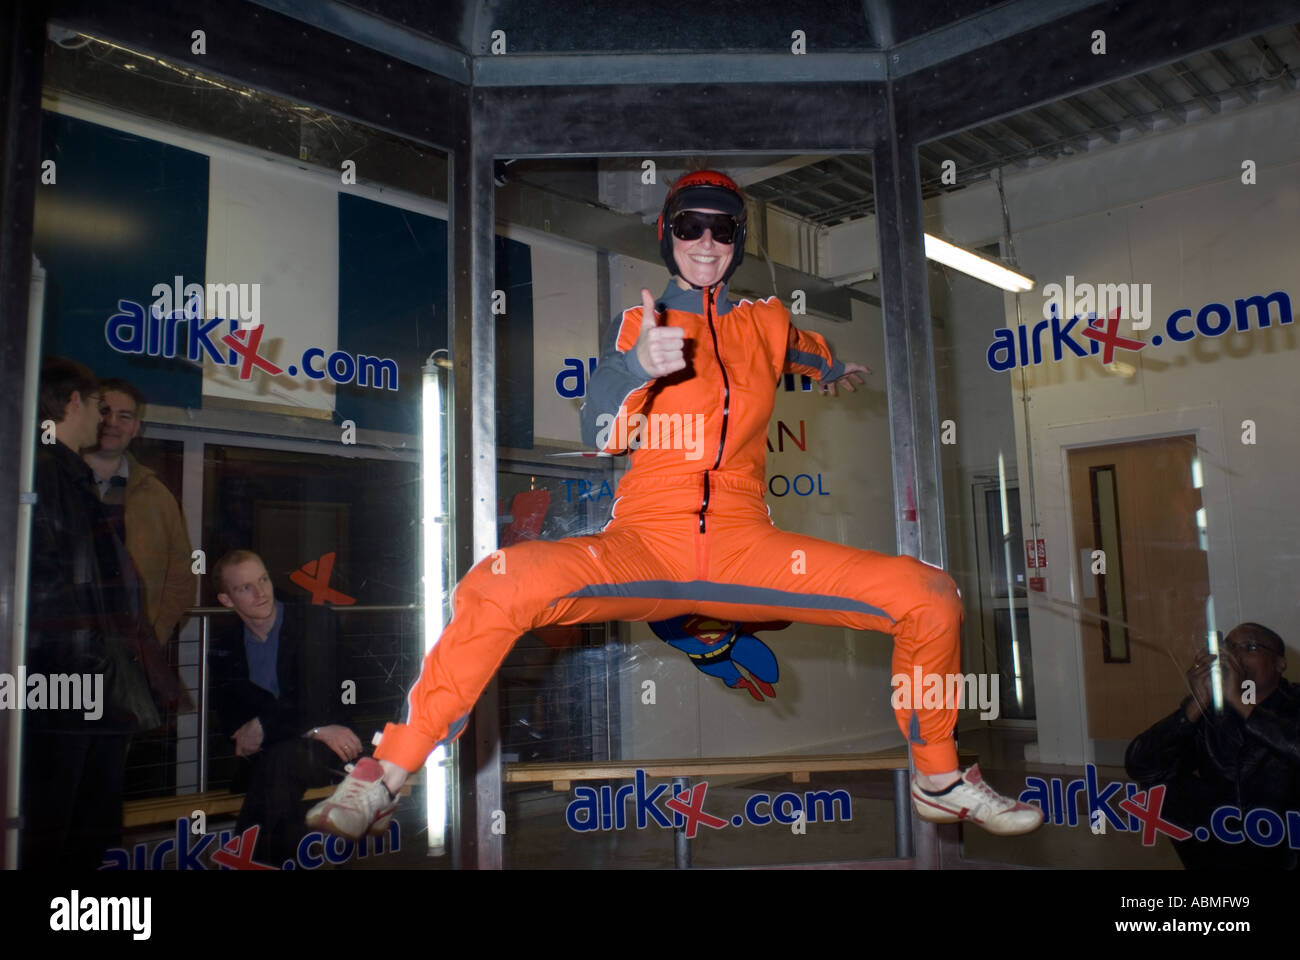 skydiver practising inside AirKix at the Xscape building in Central Milton Keynes, the Centre MK - Stock Image